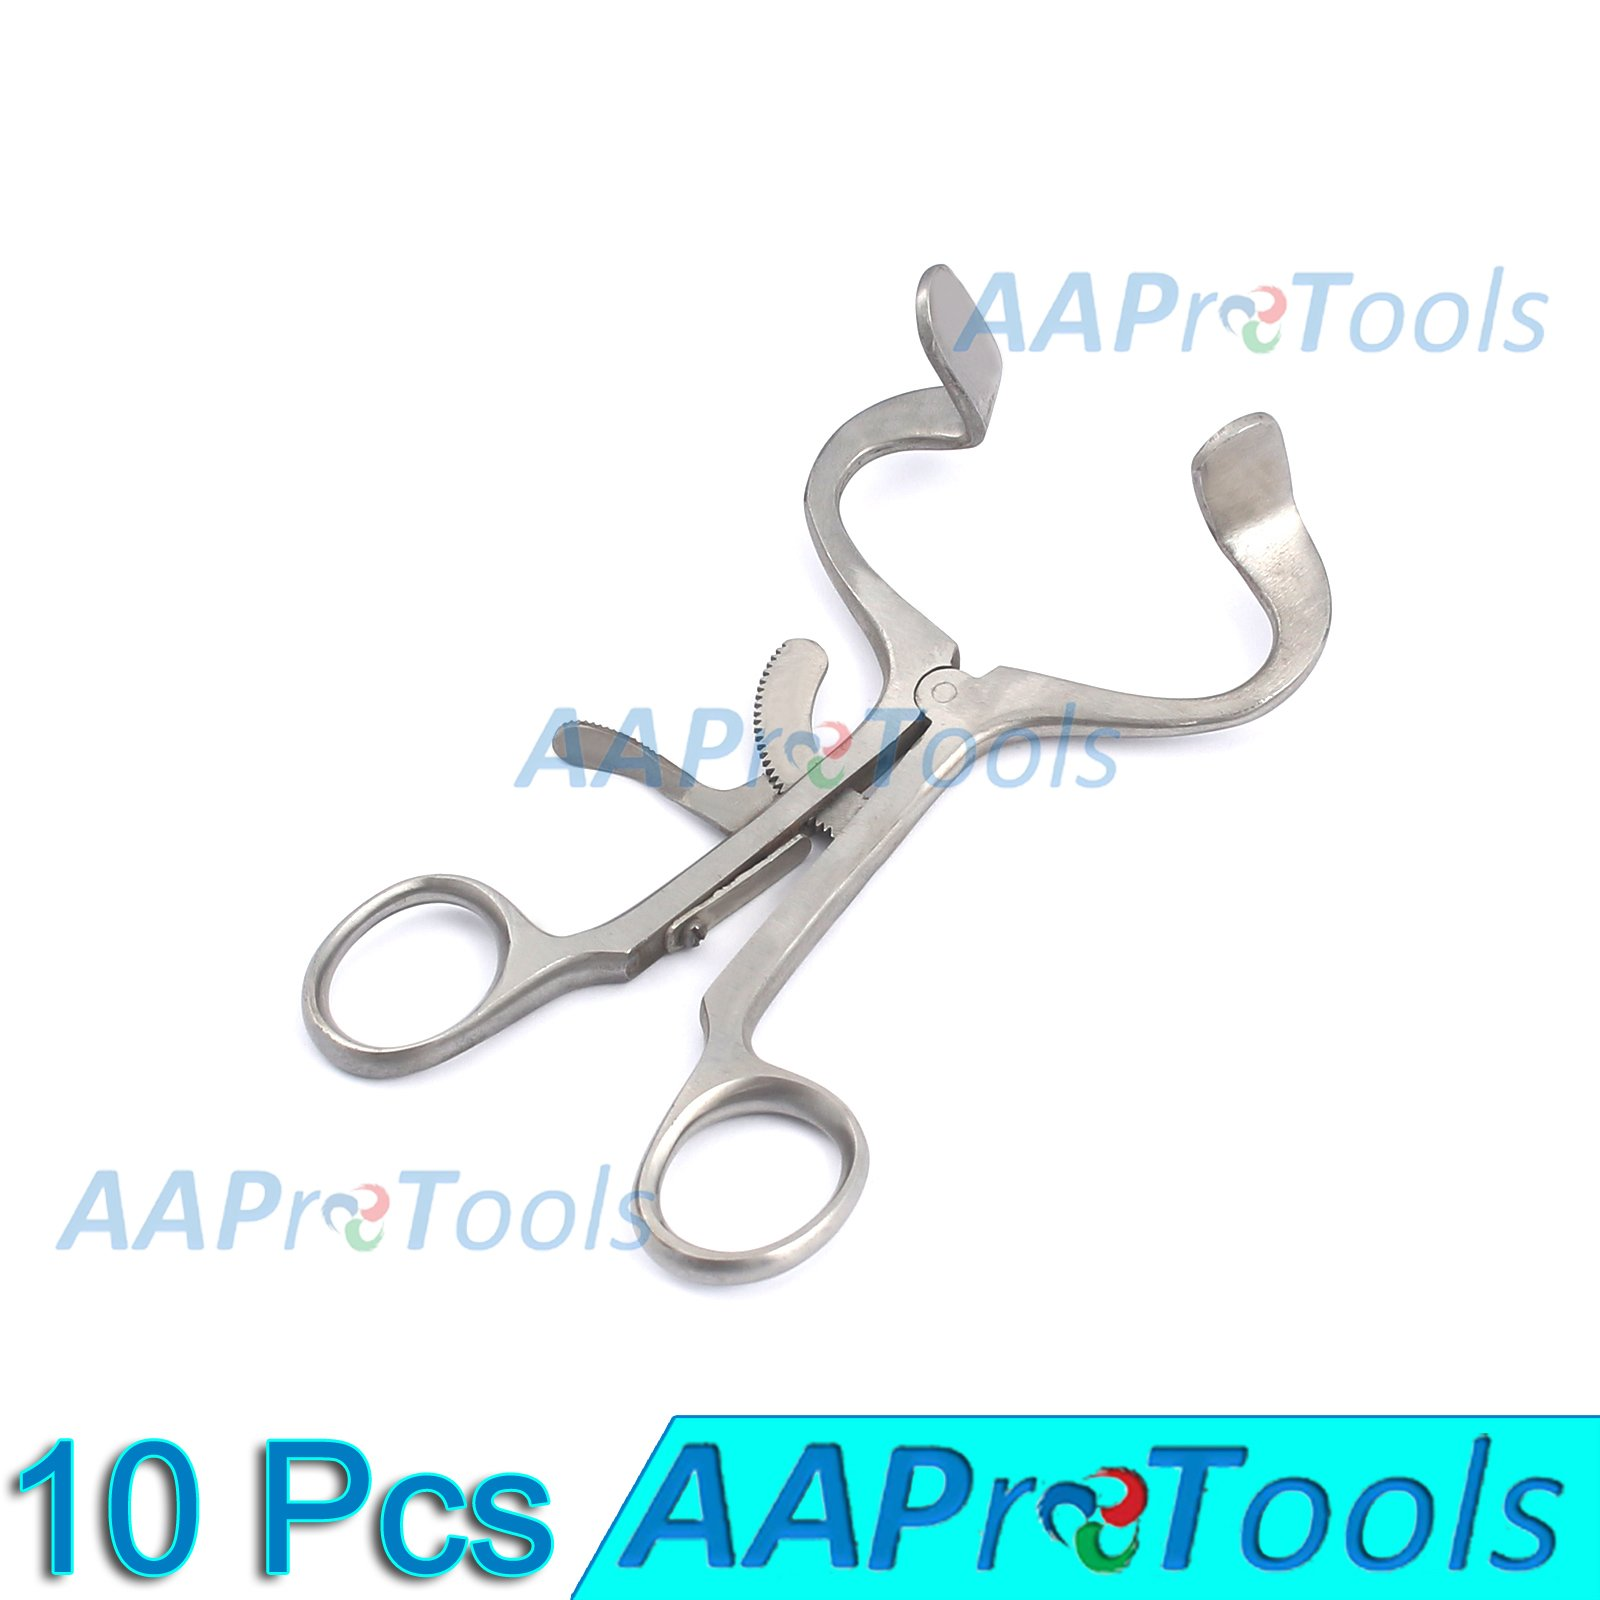 AAPROTOOLS 10× DENTAL MOUTH GAG 5.5'' STAINLESS STEEL INSTRUMENTS A+ QUALITY